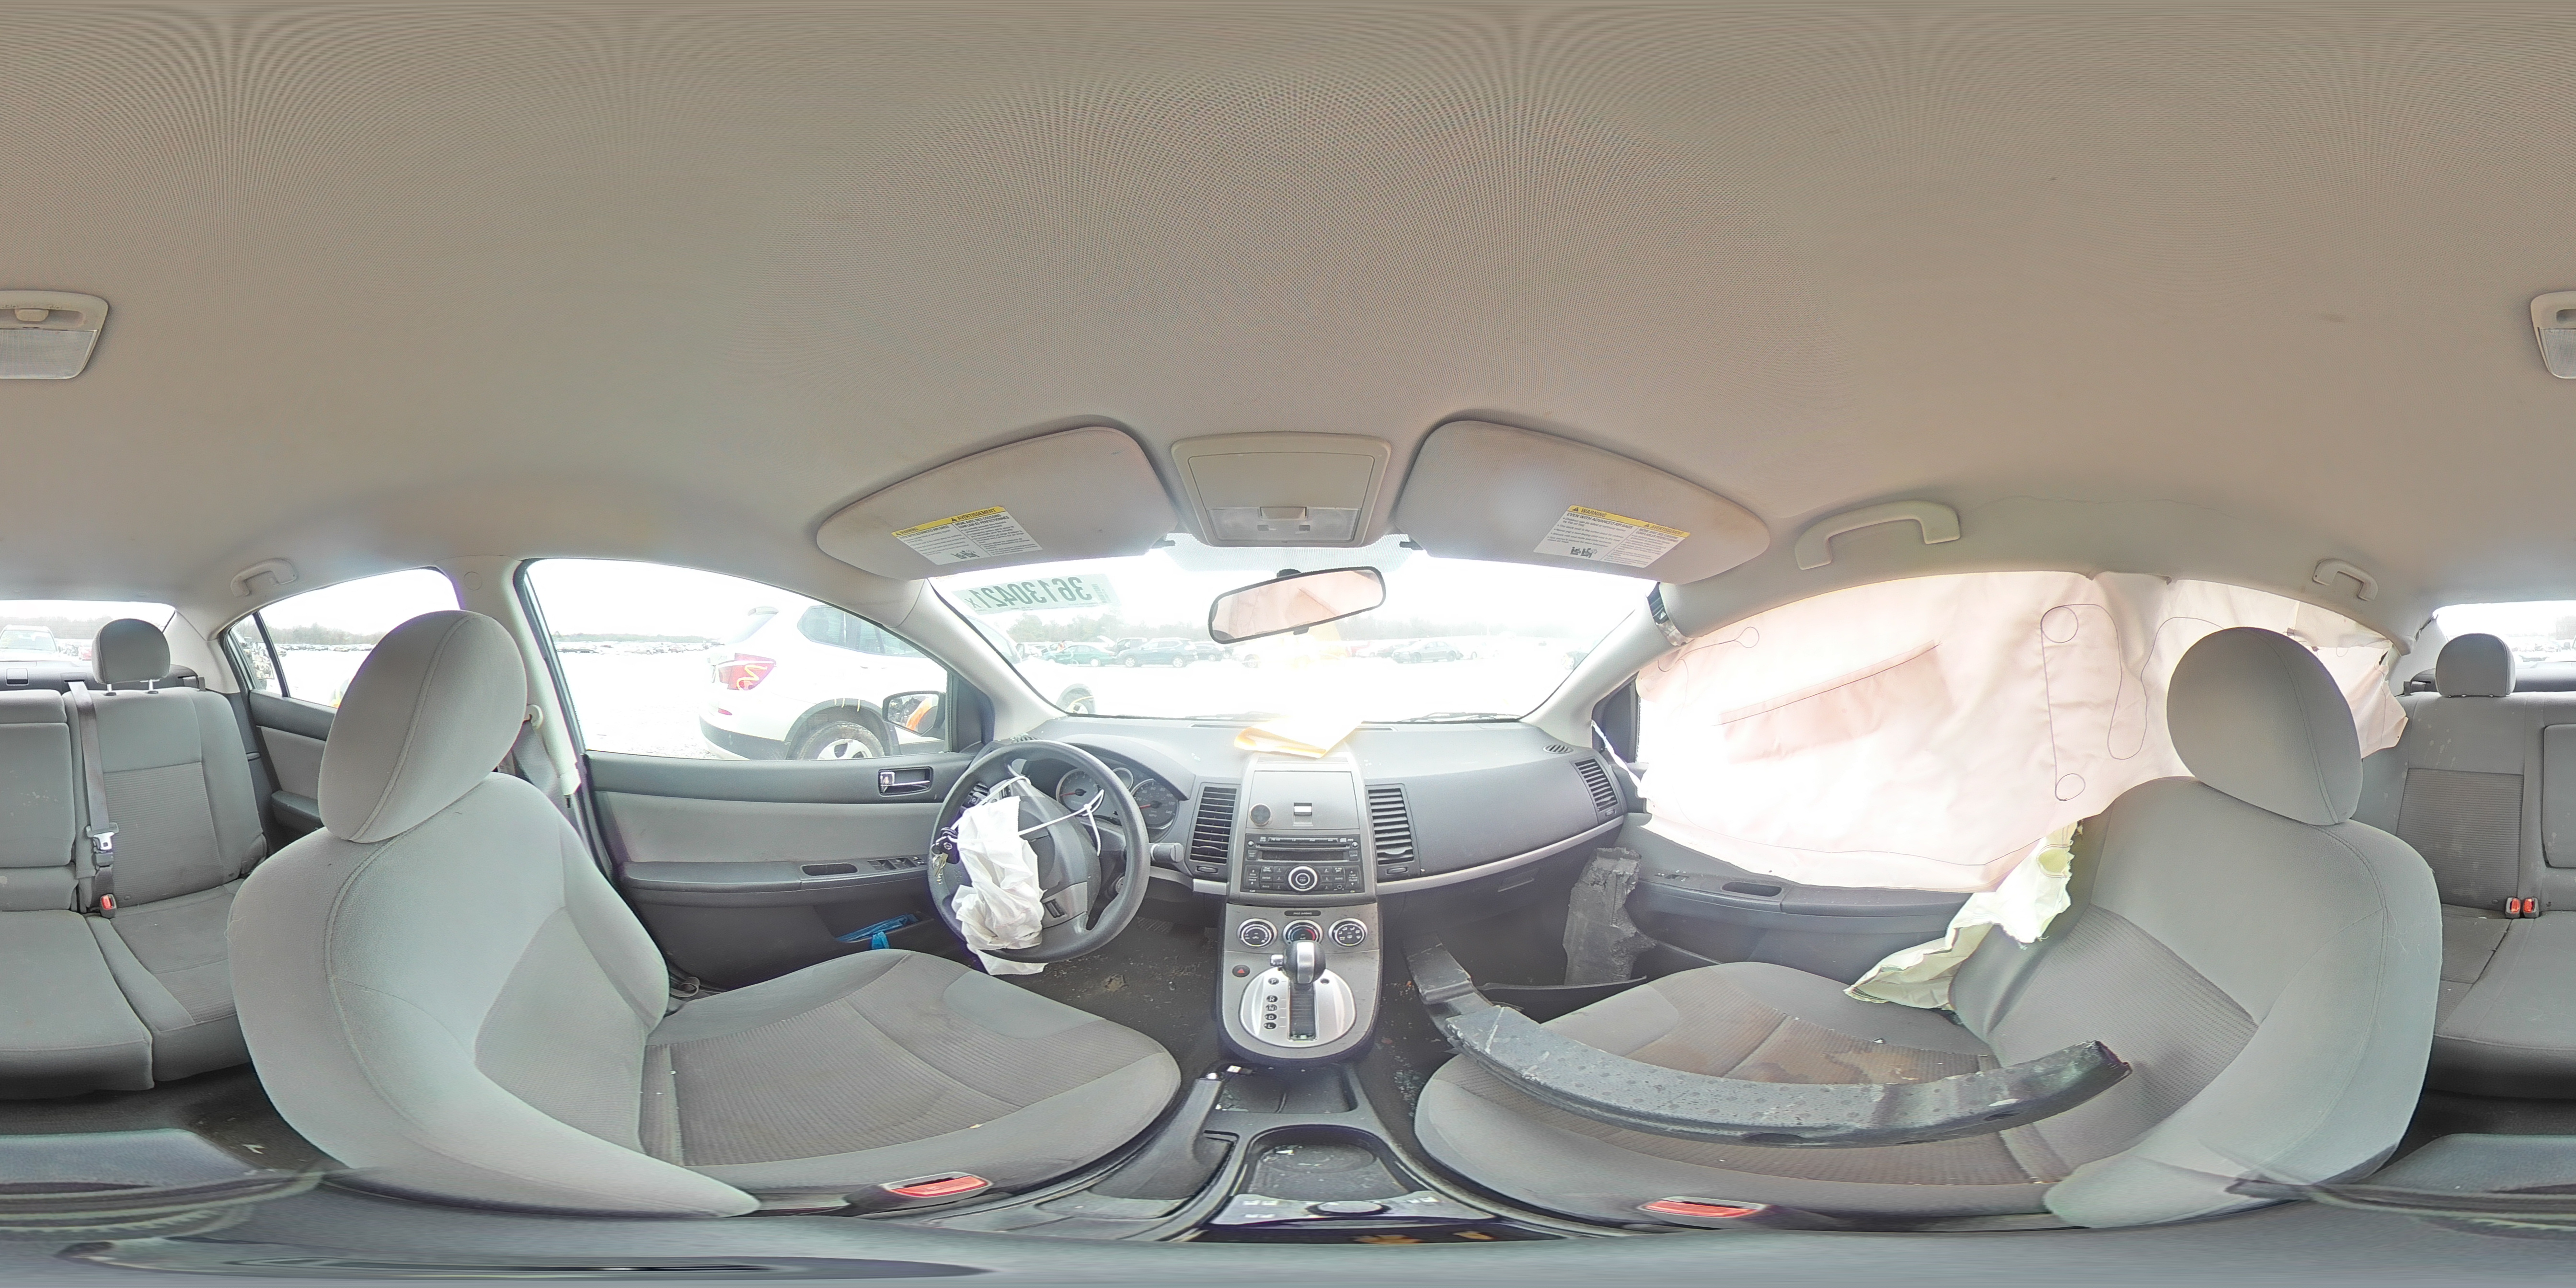 2012 NISSAN SENTRA 2.0 - Other View